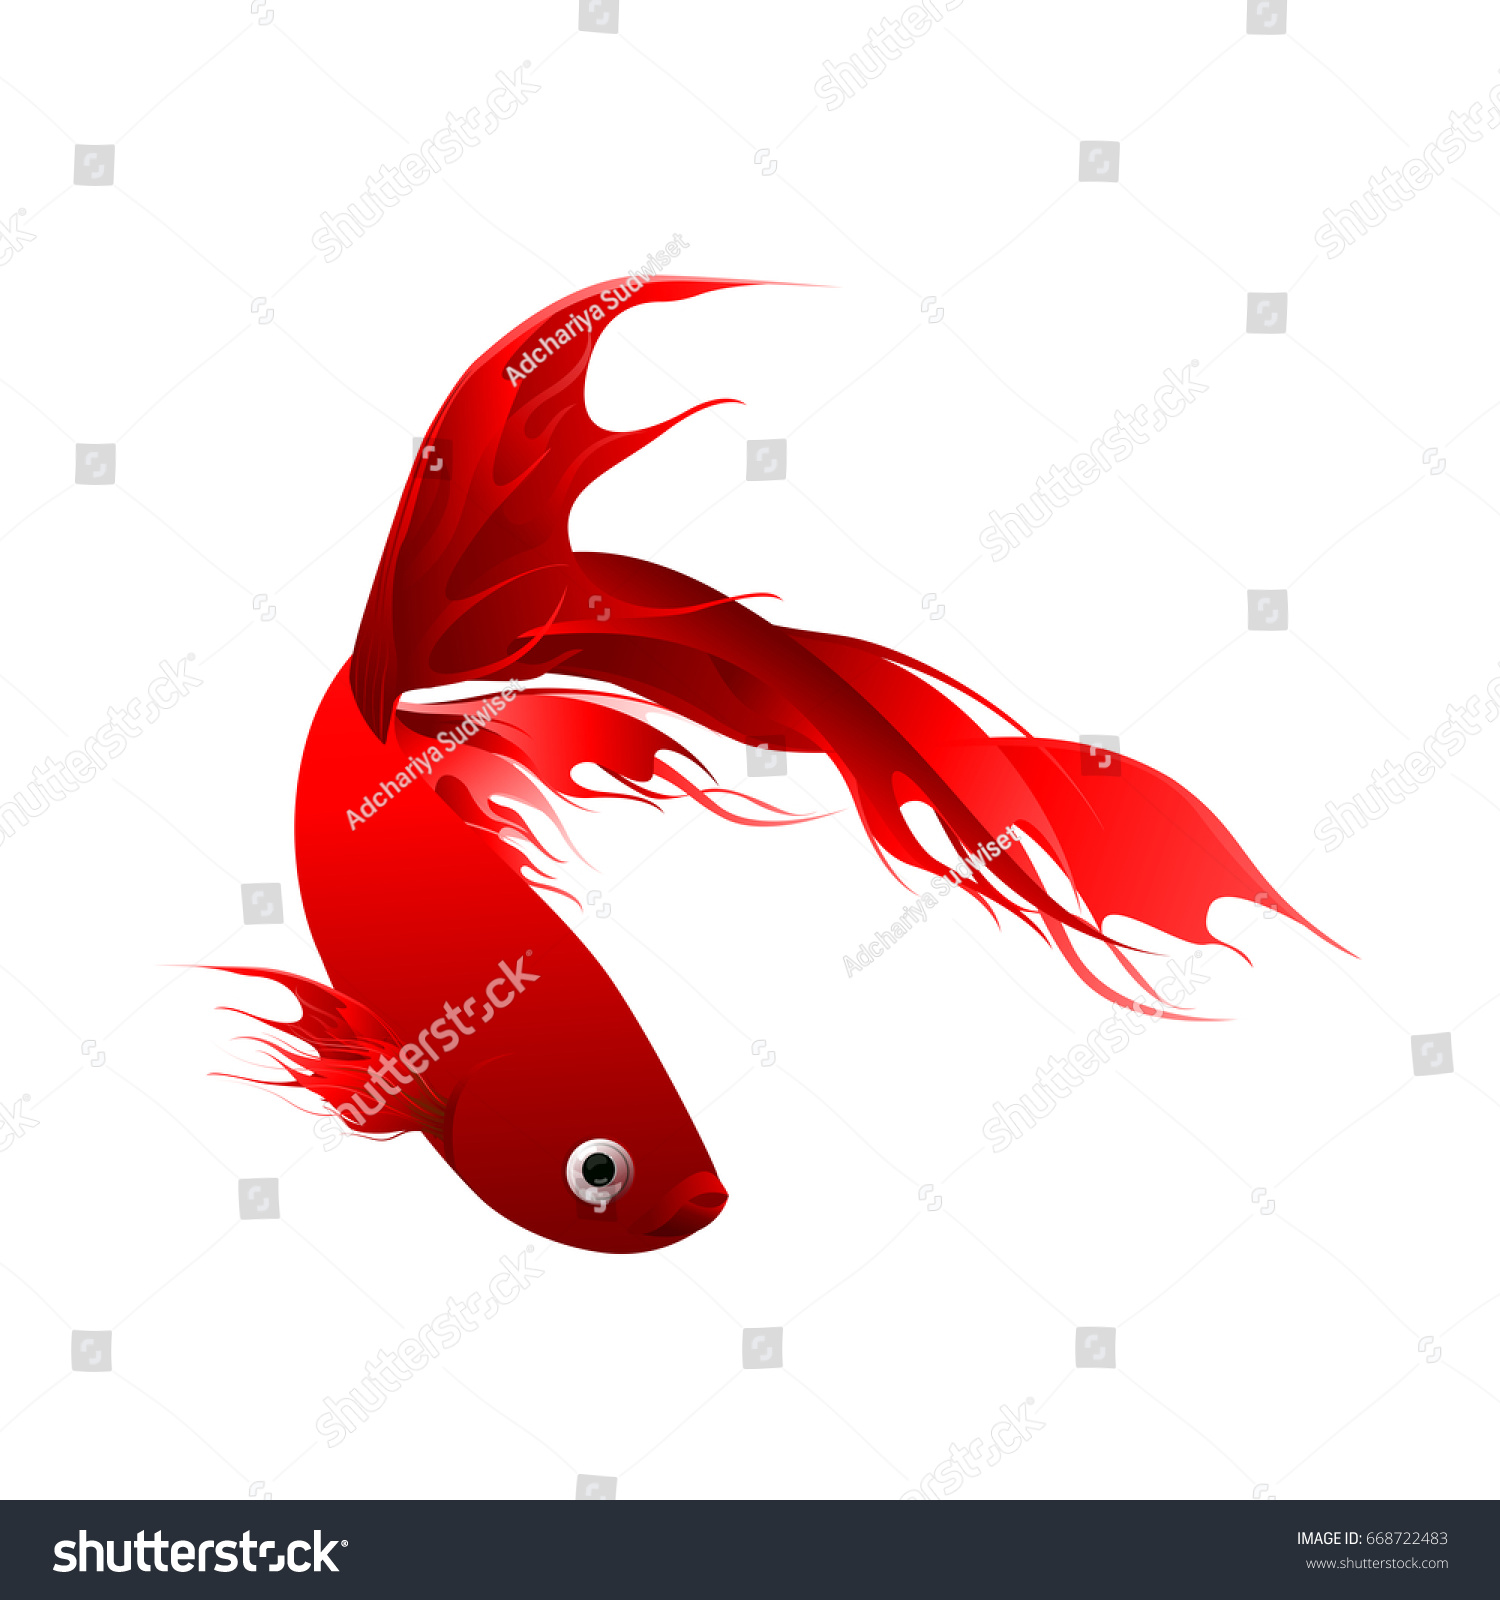 Fish Graphic Design Red Color Abstract Stock Vector 668722483 ...